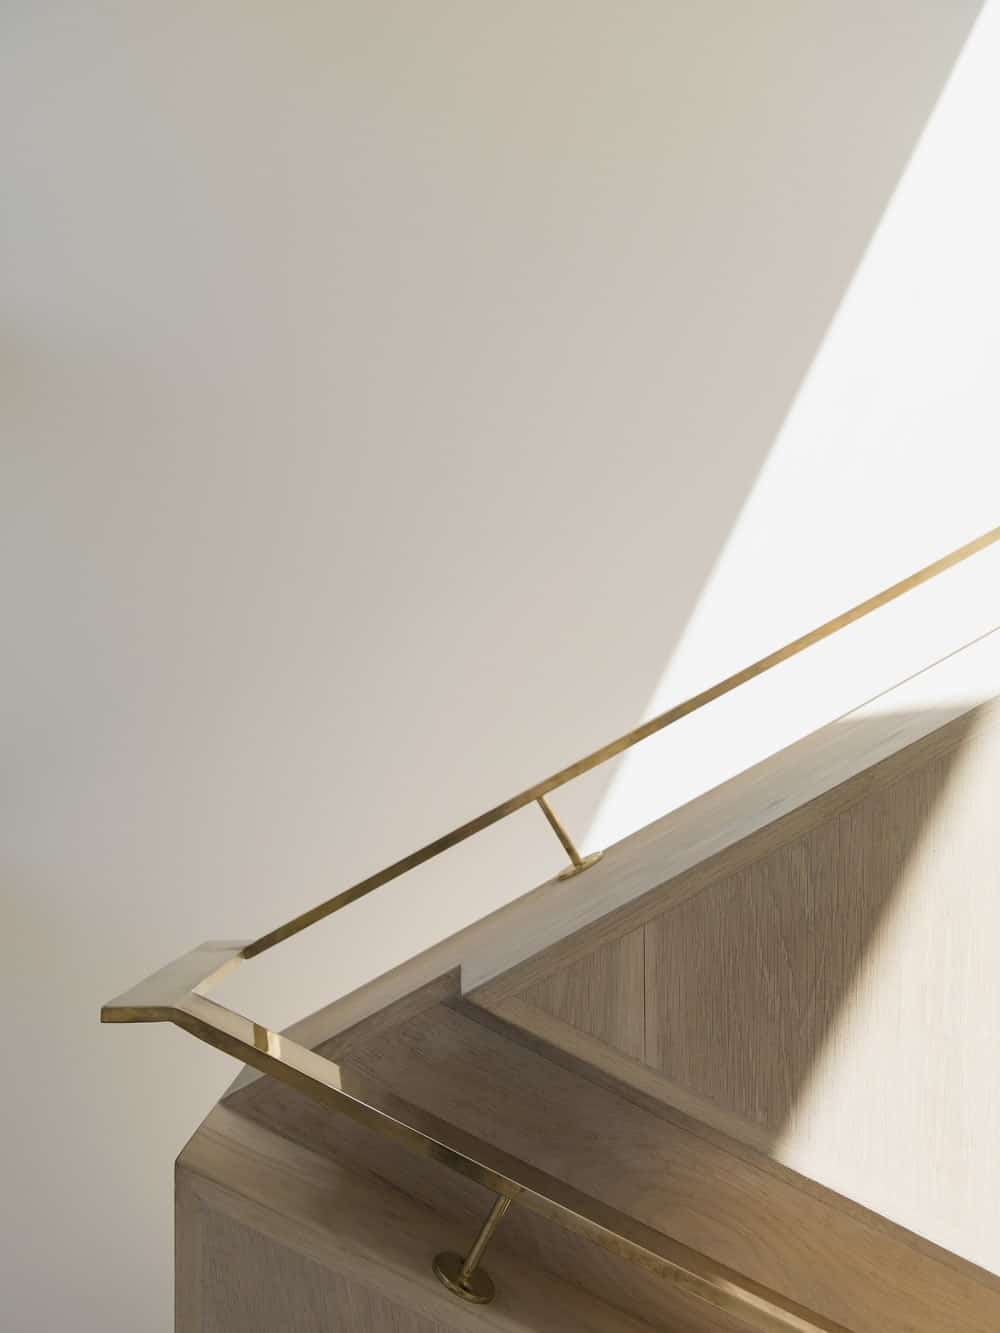 Staircase brass railings in the Herne Bay Hideaway designed by Lloyd Hartley Architects.